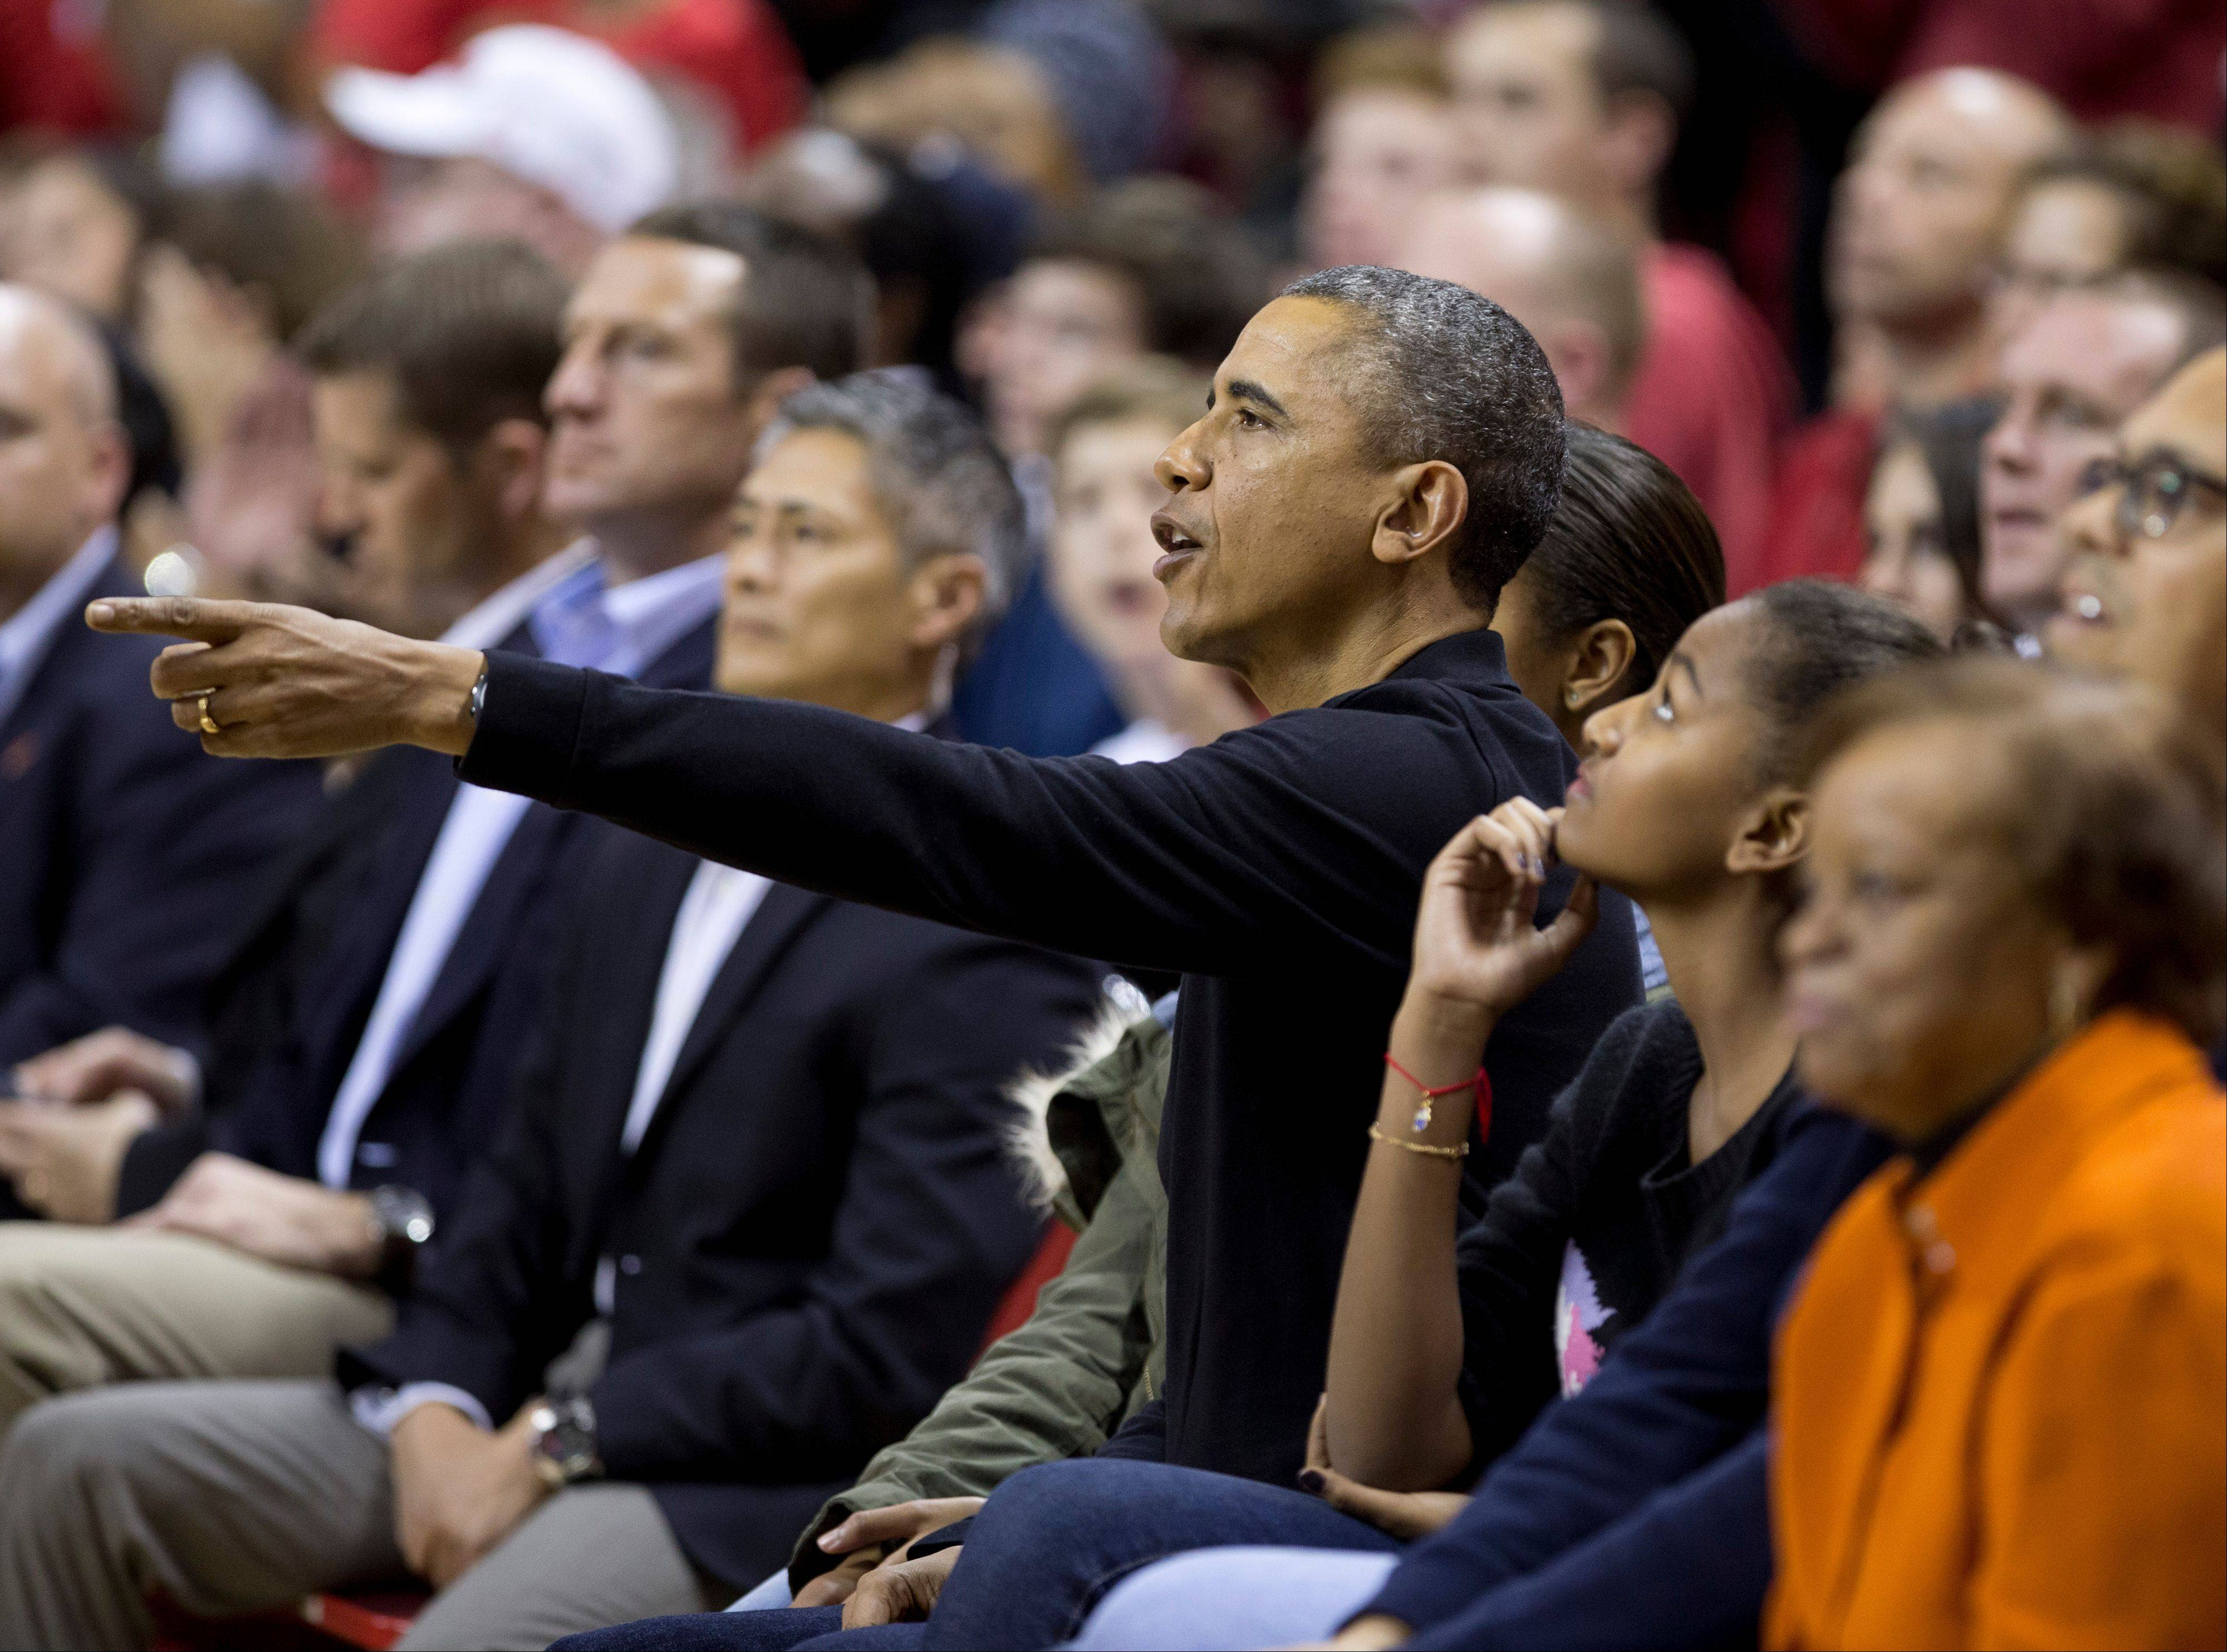 President Barack Obama, third from right, with first lady Michelle Obama, and their daughters Malia, and Sasha, second from left, and mother-in-law Marian Robinson, right, watch a basketball game between his brother-in-law Oregon State Beavers Coach Craig Robinson�s team play against the Maryland Terrapins on Sunday in College Park, Md.